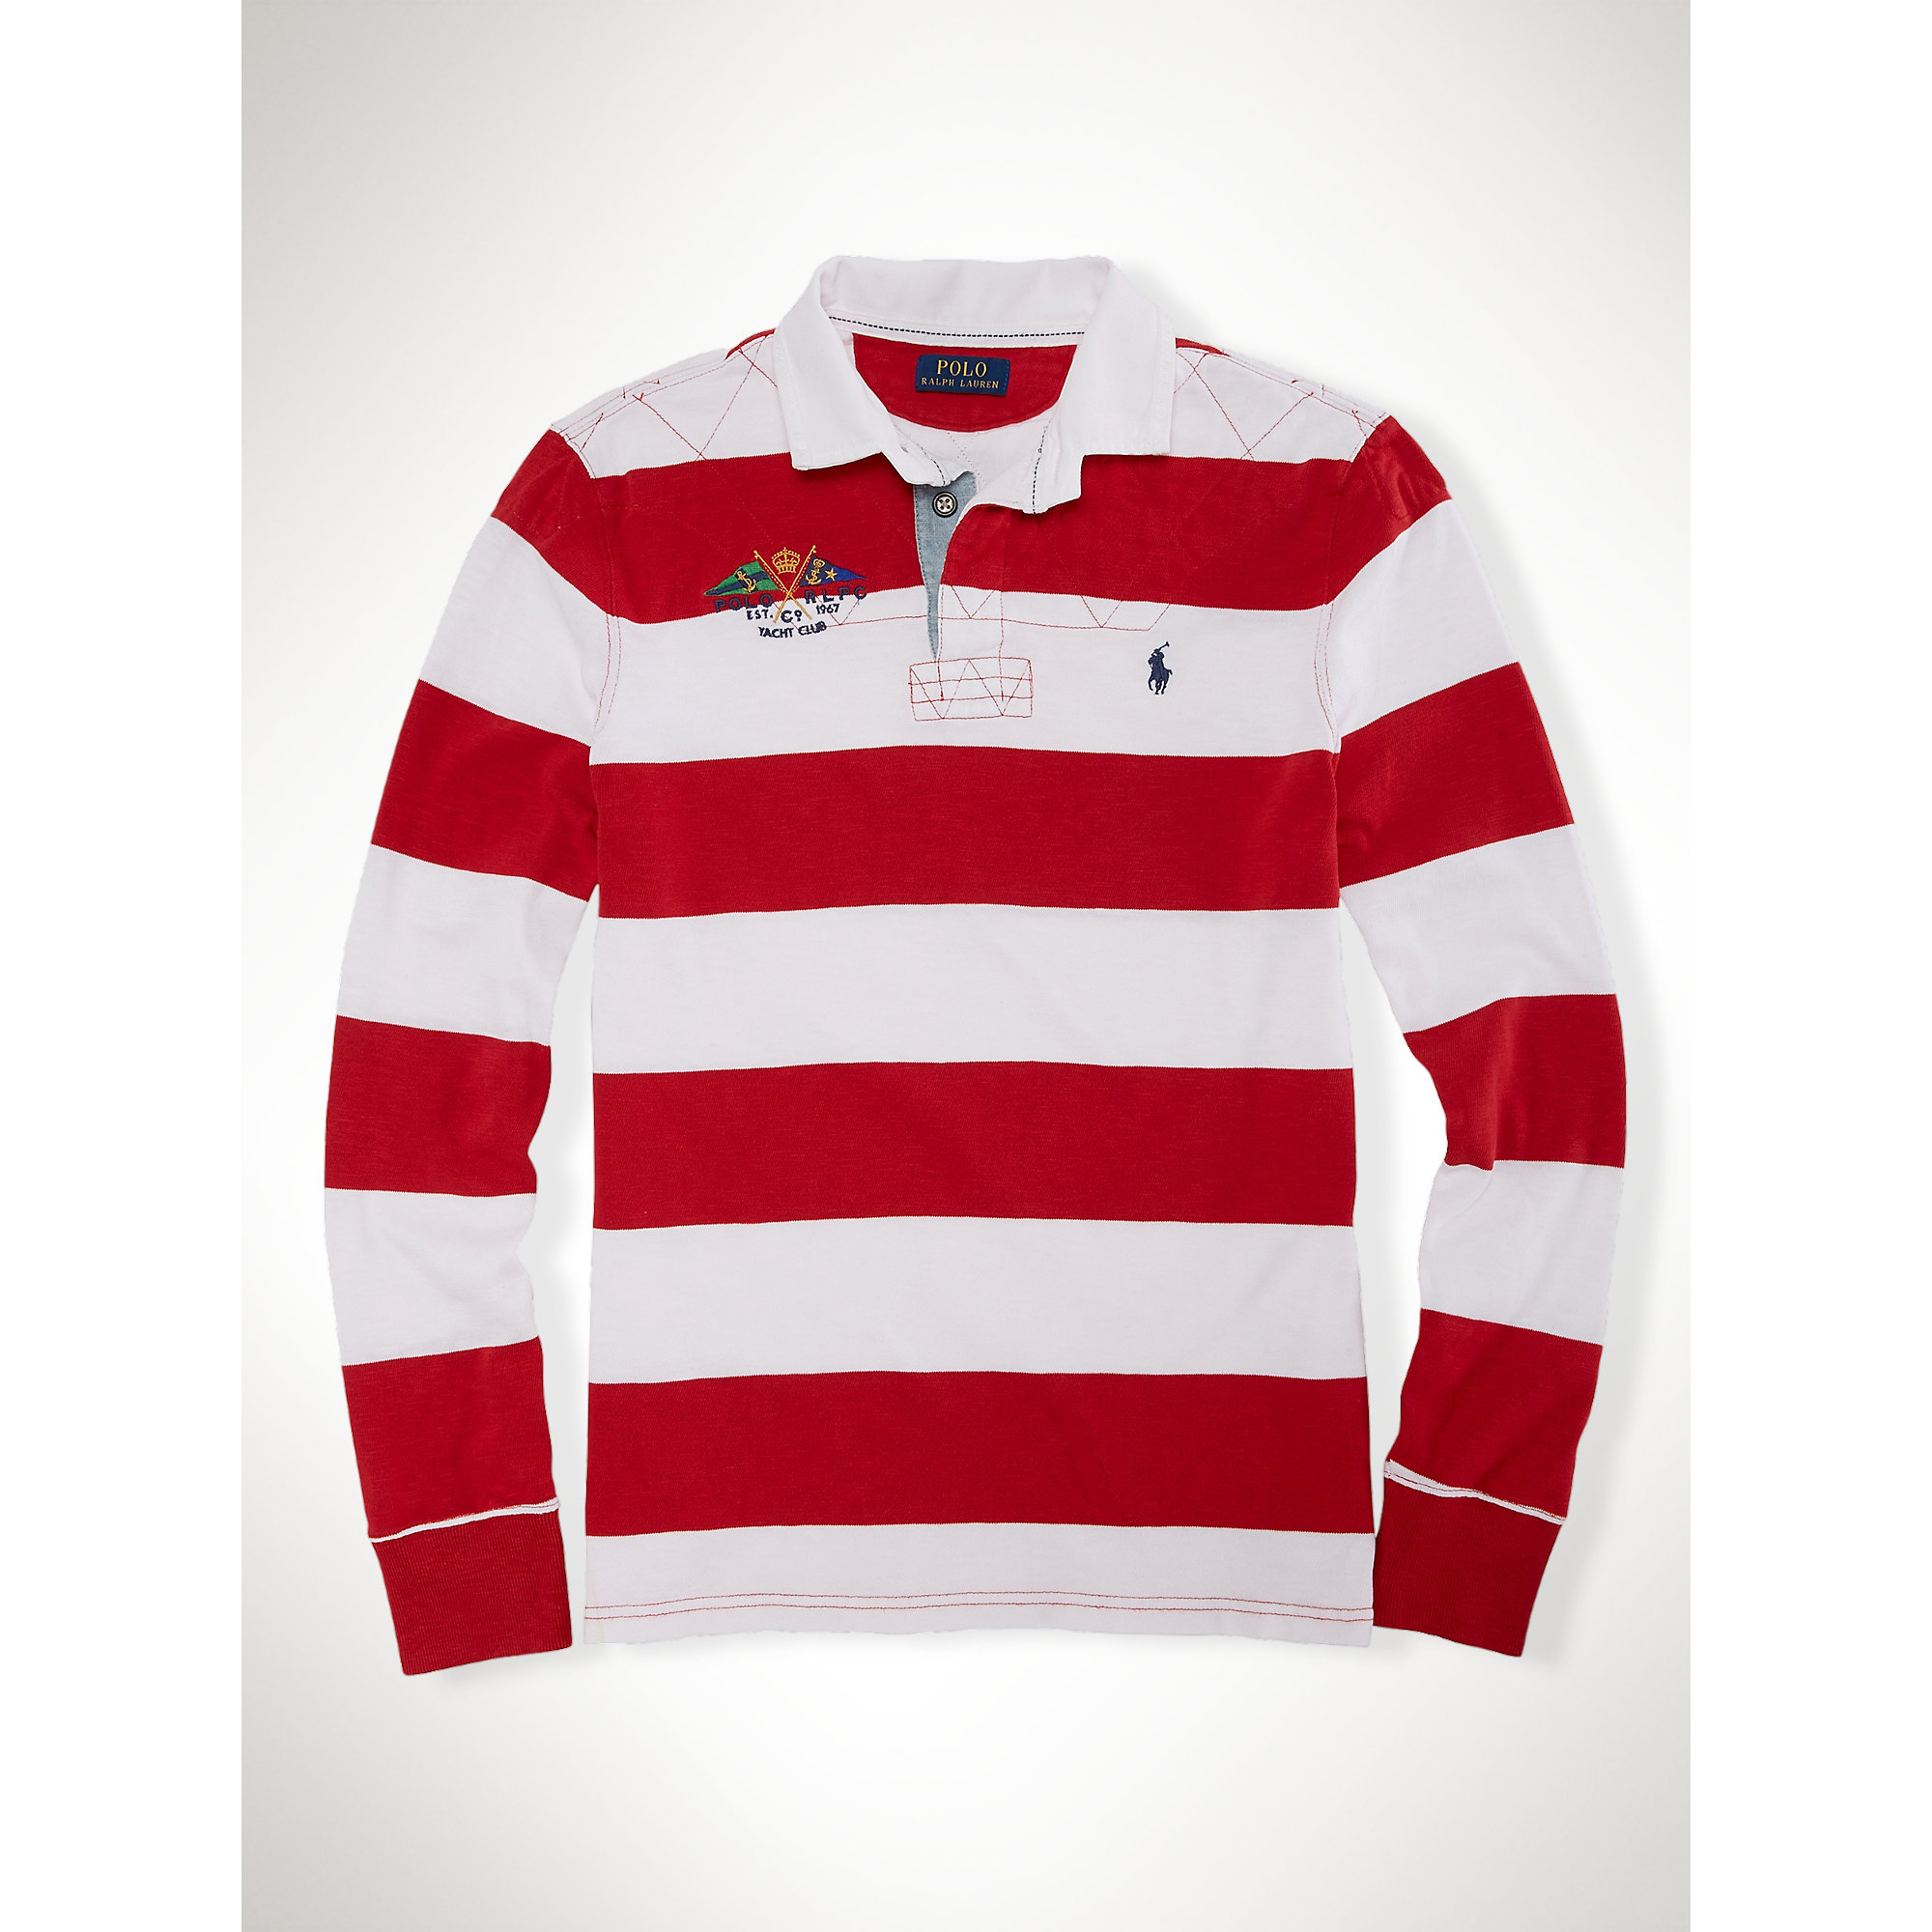 f4462de25e164 Gallery Men S Soccer Tops. Gallery Men S Soccer Tops. Lyst Polo Ralph Lauren  Custom Fit Striped ...